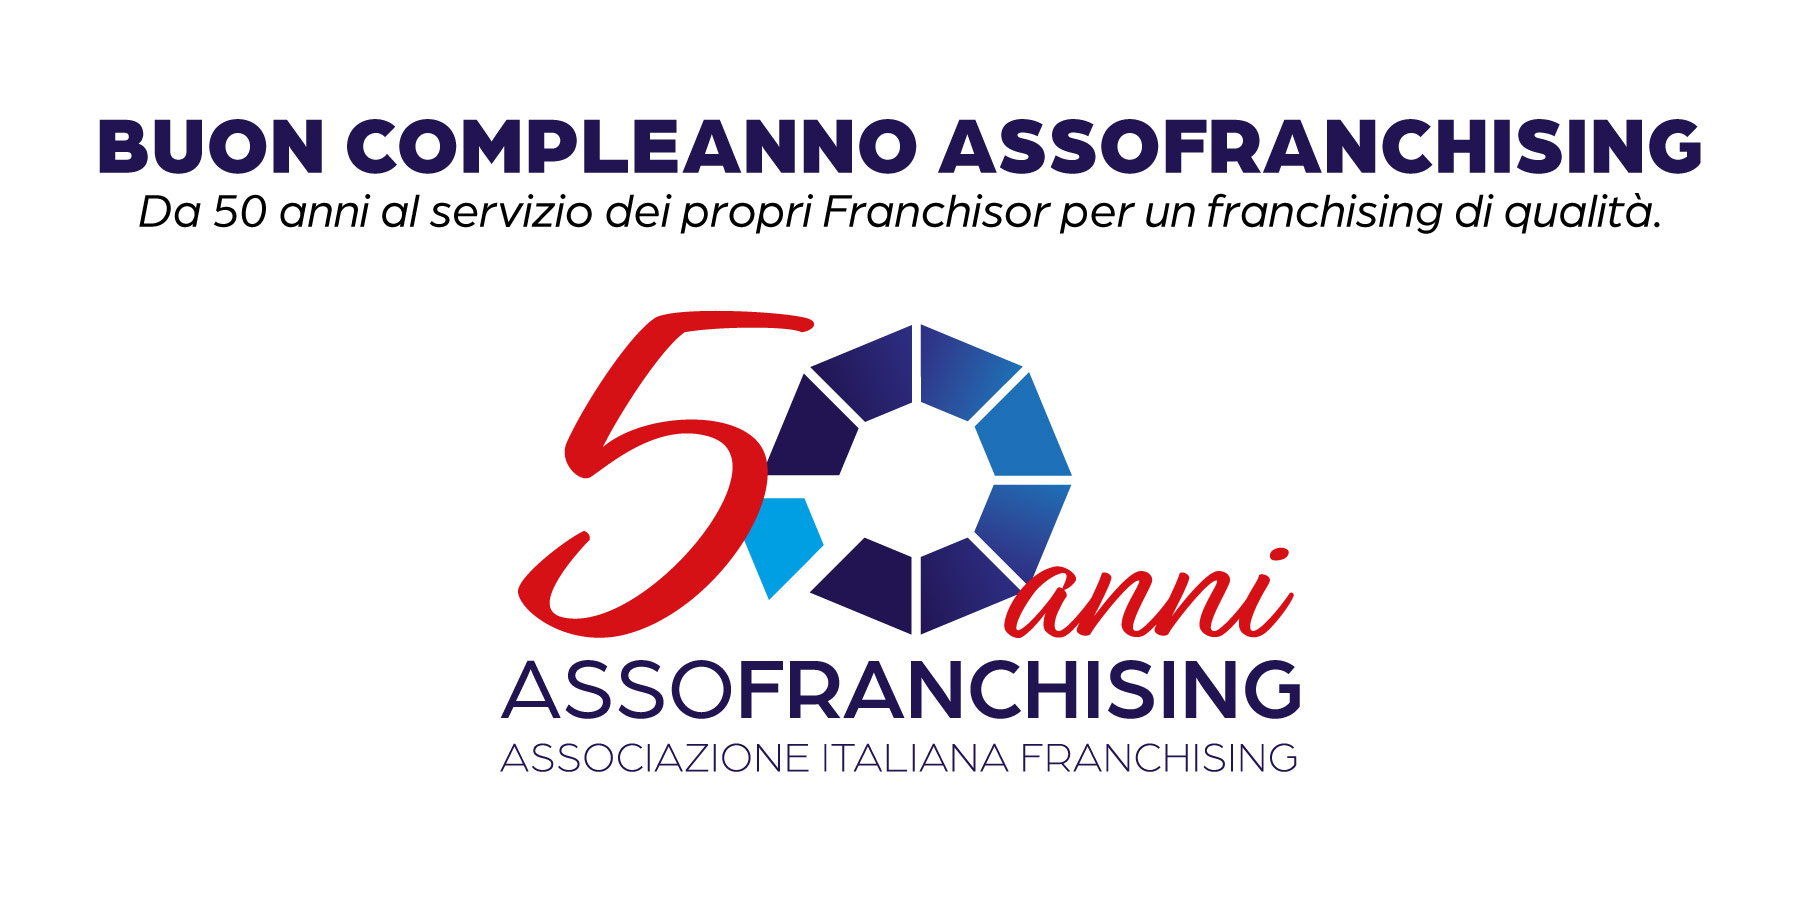 Buon Compleanno Assofranchising